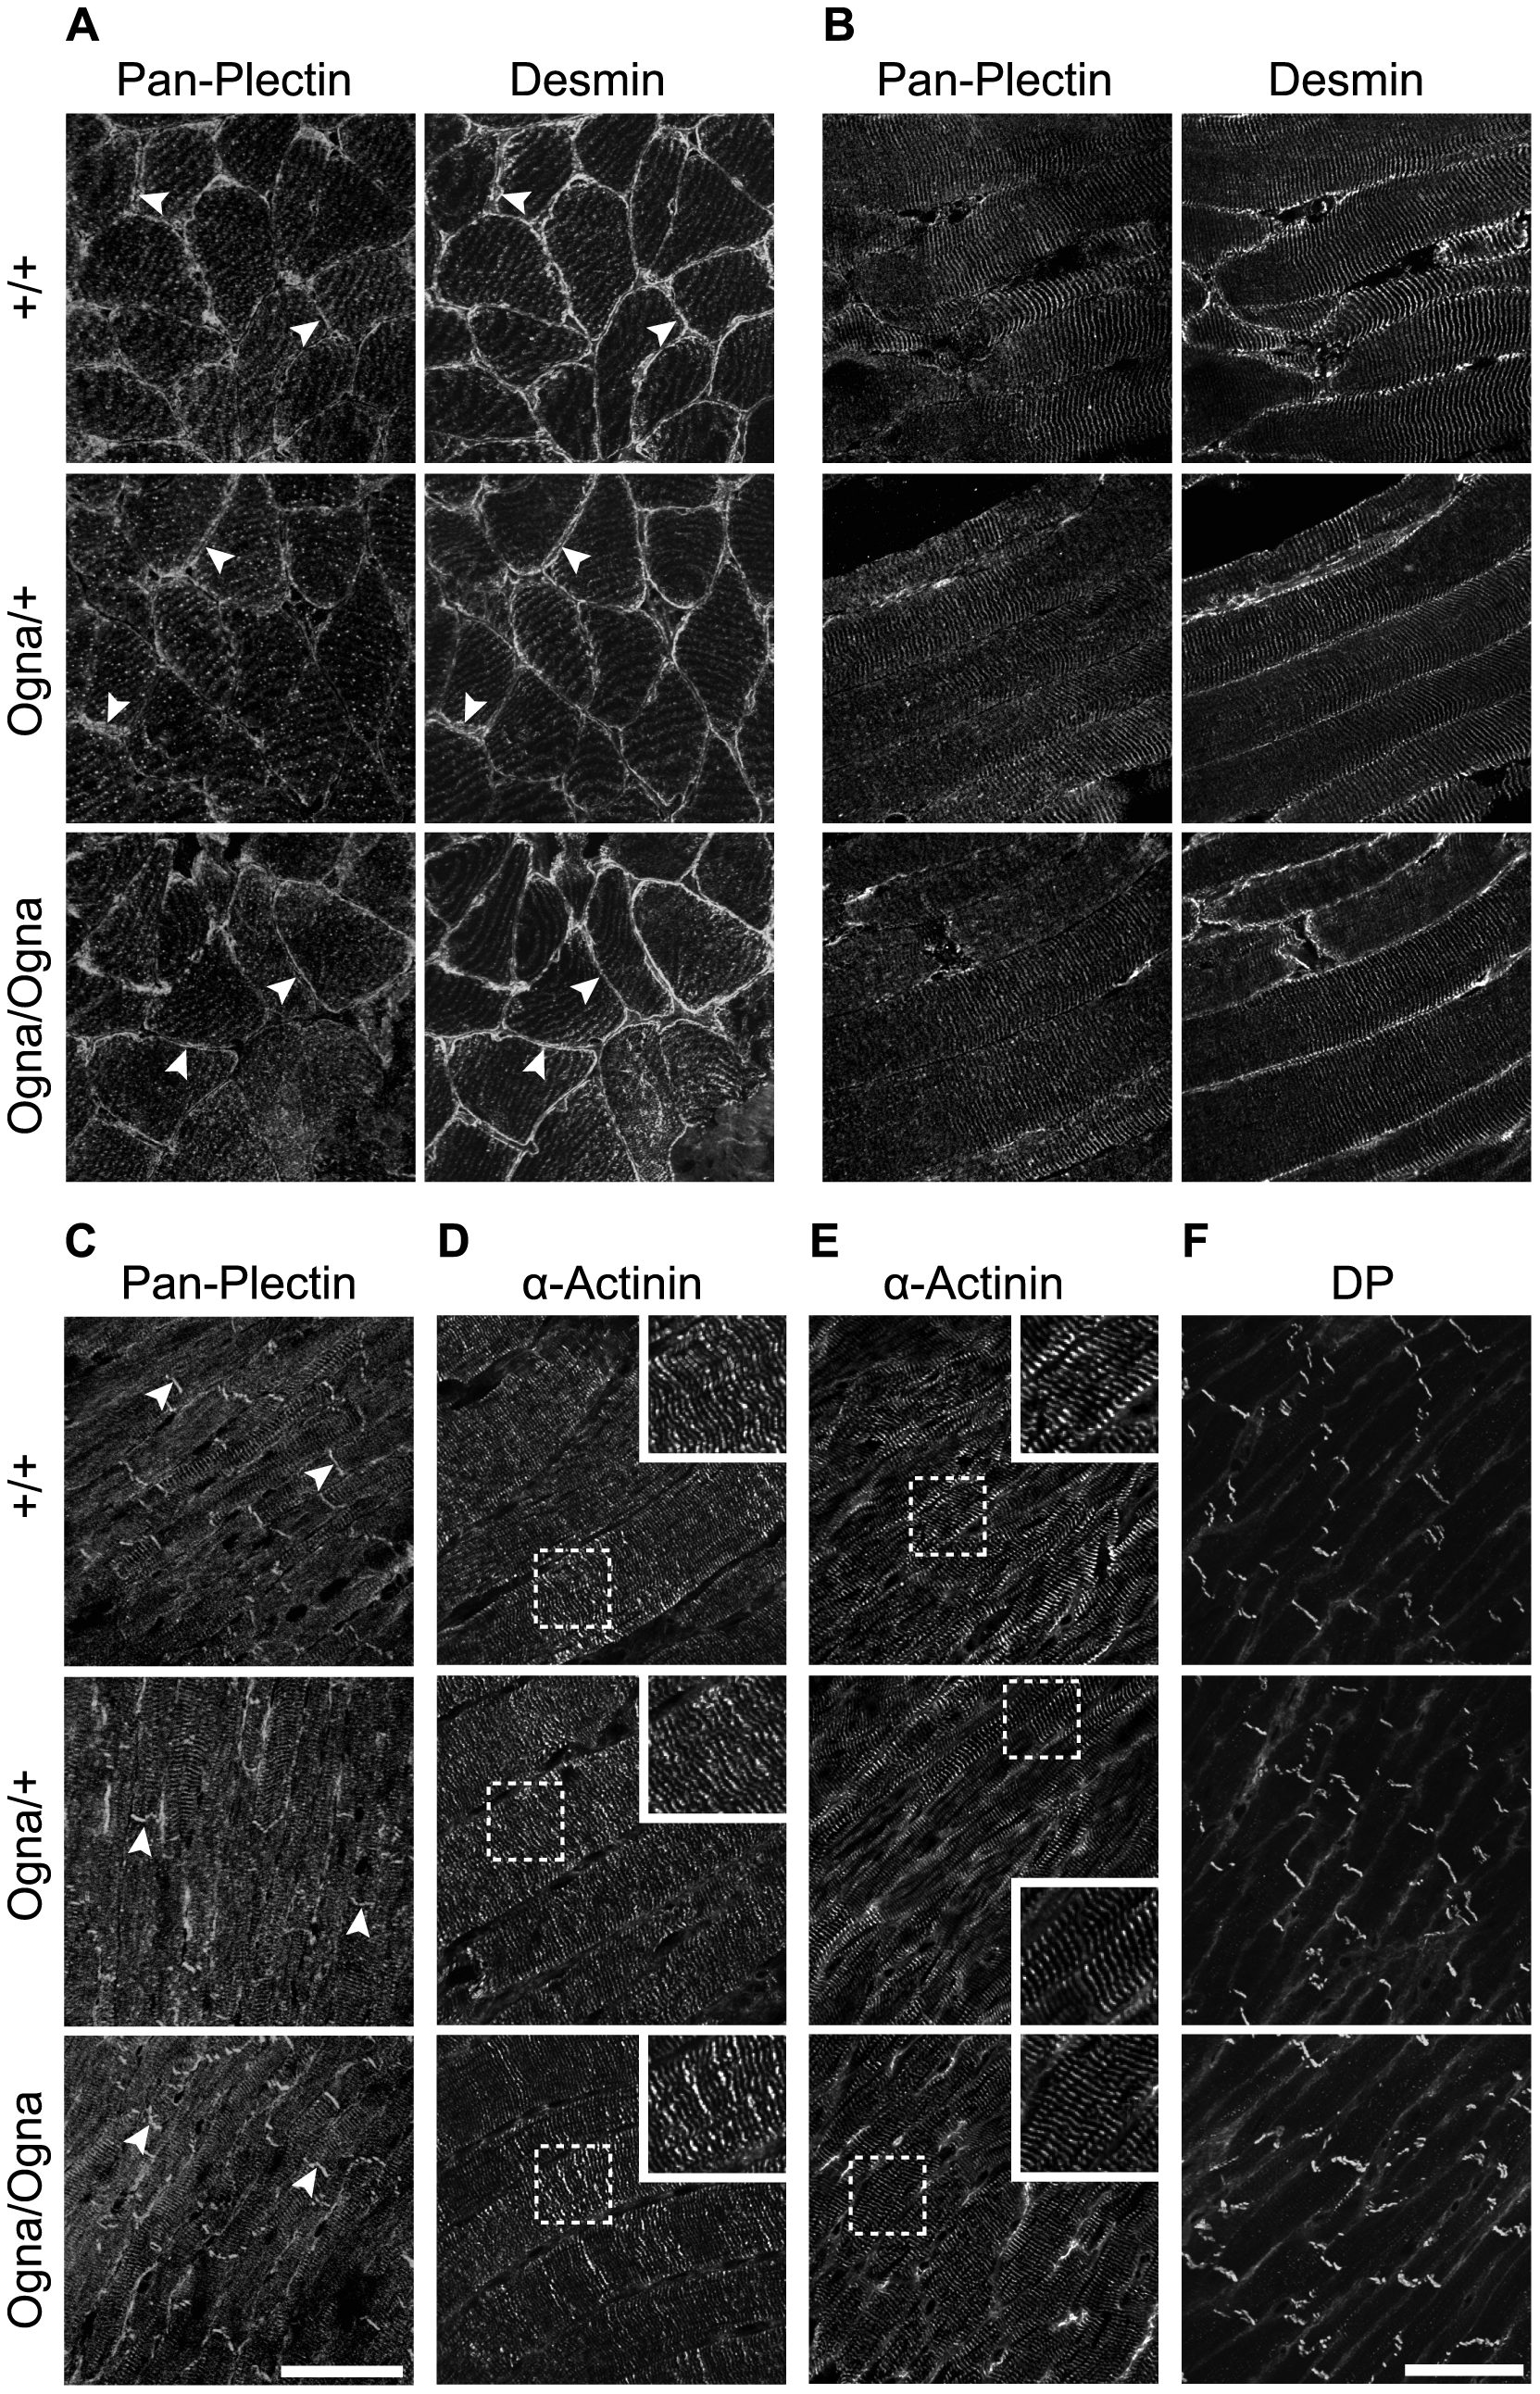 Normal plectin expression and contractile apparatus organization in muscle tissues of Ogna mice.